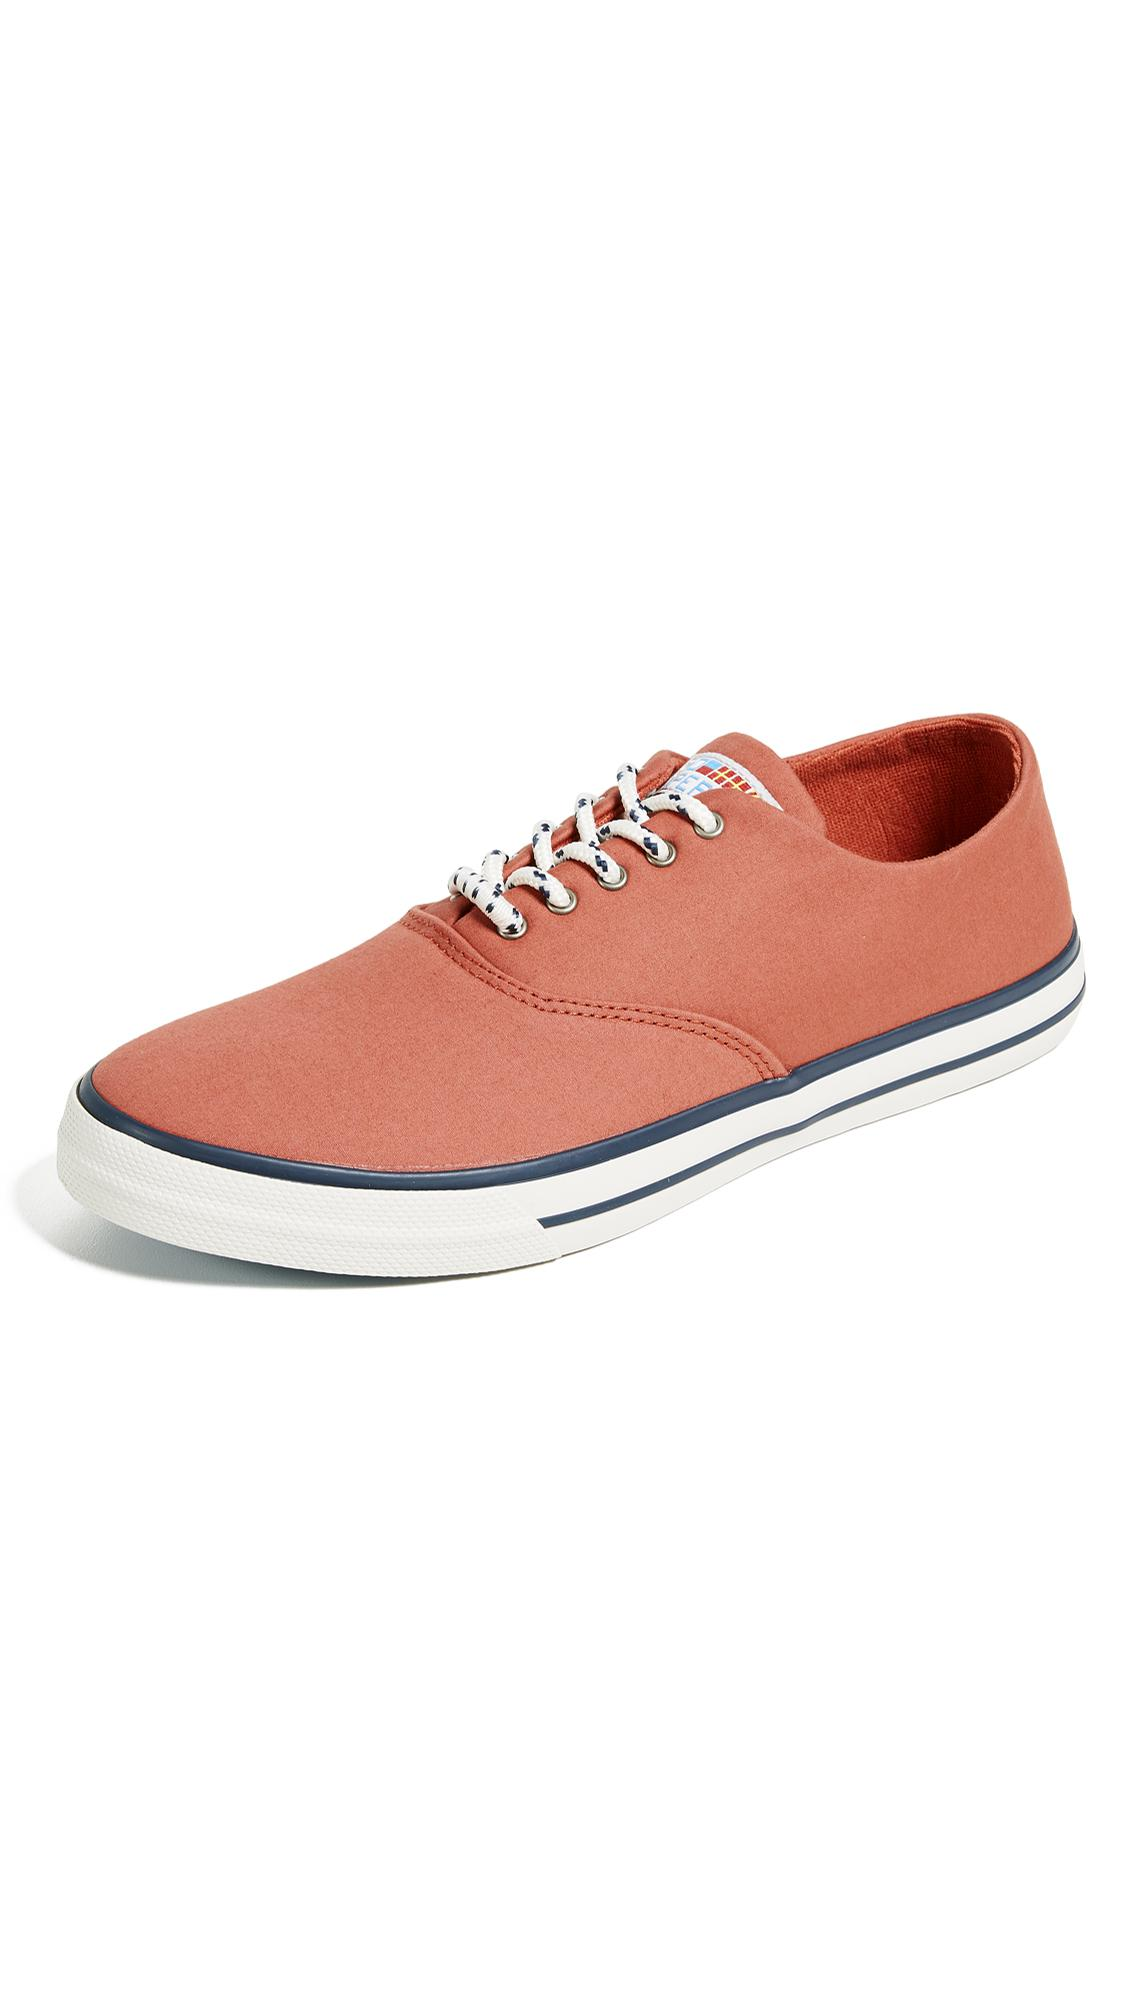 Captains CVO Nautical - FOOTWEAR - Low-tops & sneakers Sperry Top-Sider 9HLR5ByKc